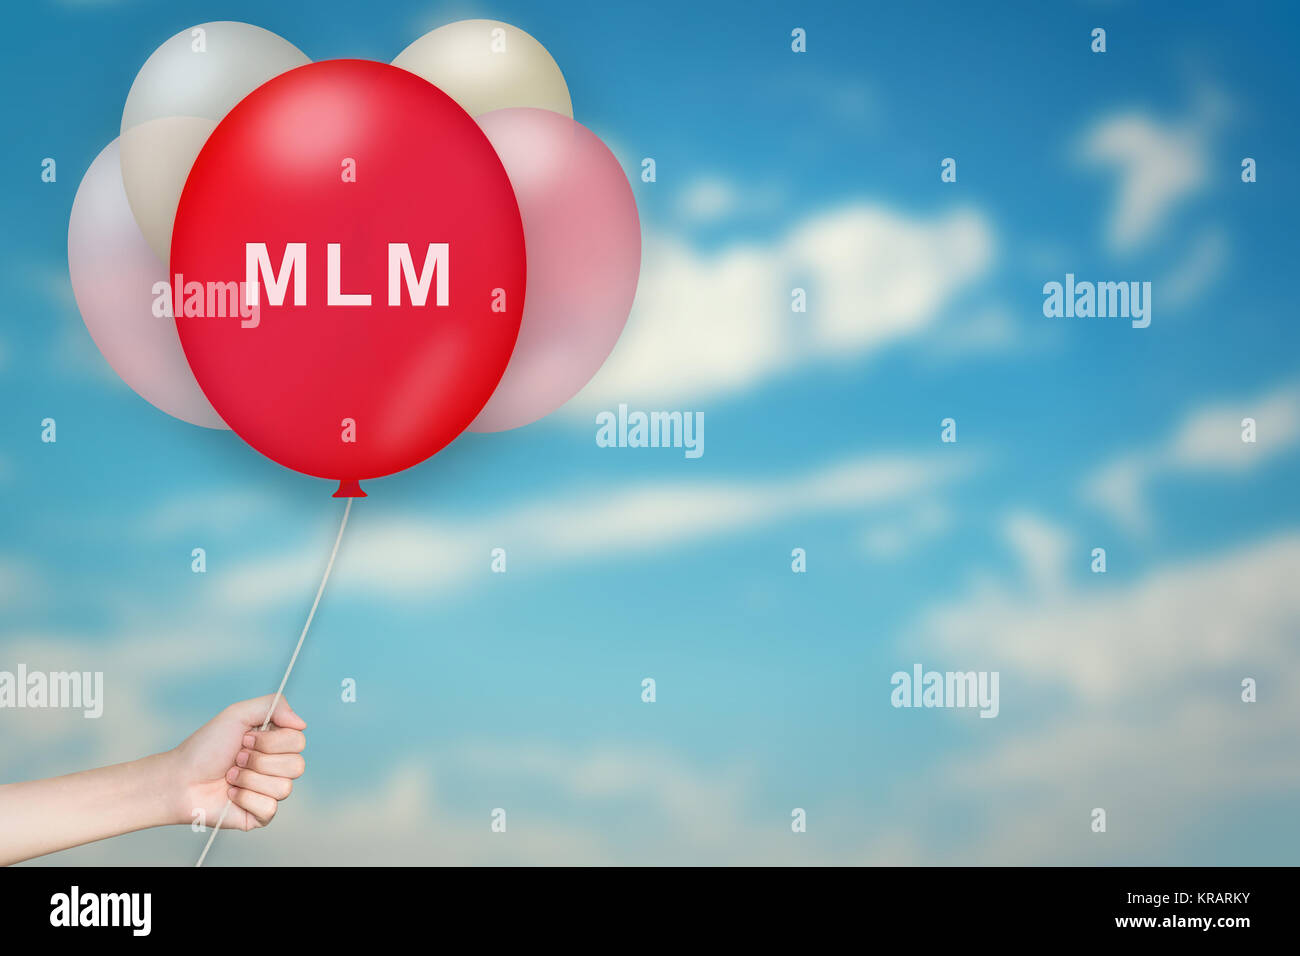 Hand Holding MLM or Multi level marketing Balloon Stock Photo